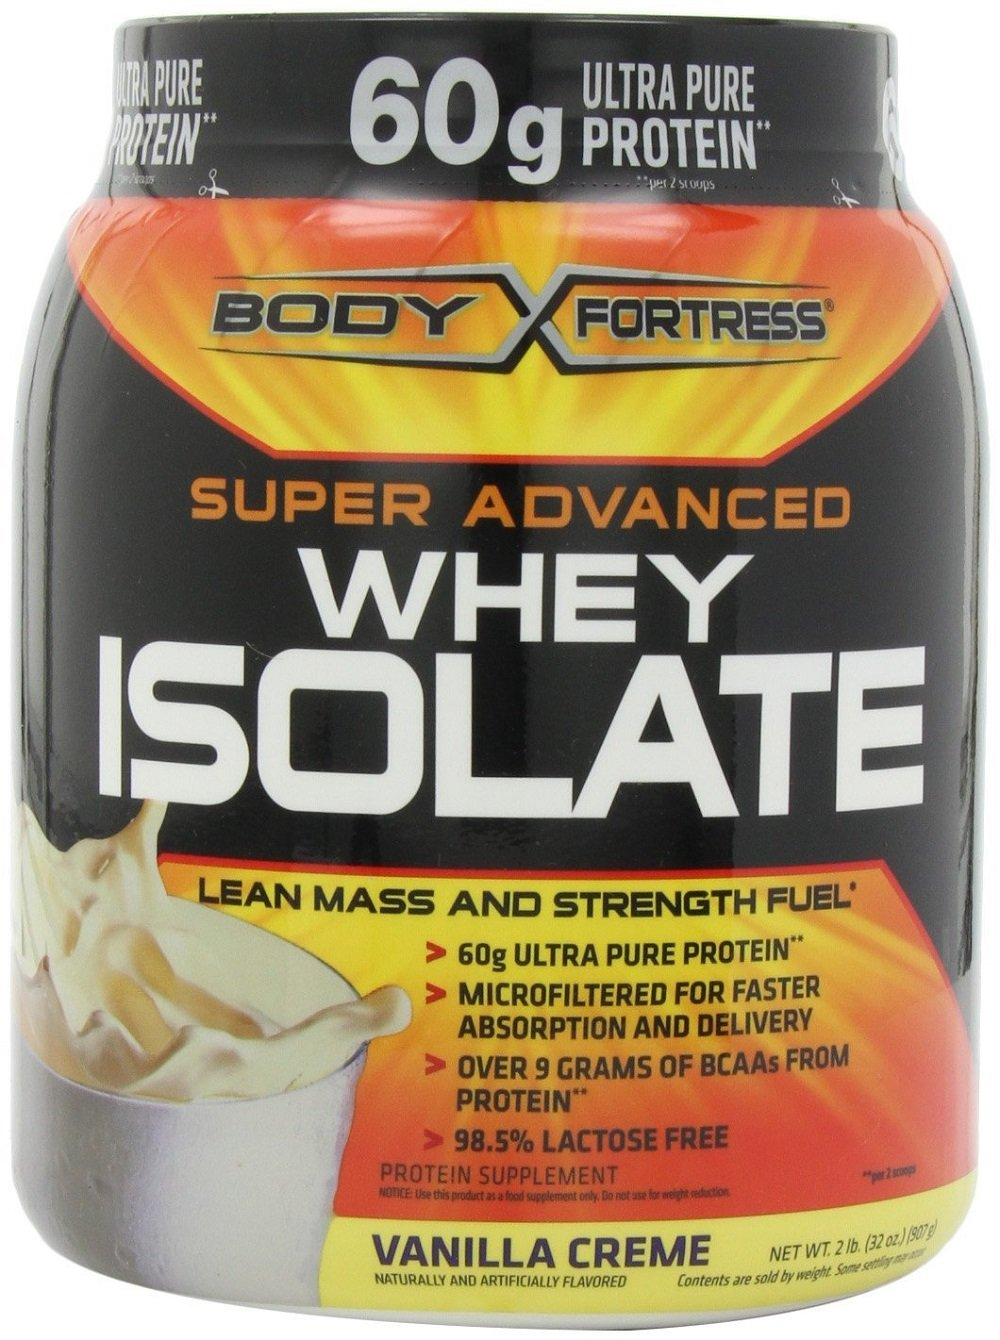 Body Fortress Super Advanced Whey Protein is a supplement intended for use by bodybuilders and other athletes who need high levels of protein to support their activities. If you are not a strength-training athlete, you still may benefit from Body Fortress Super Advanced Whey Protein, as .